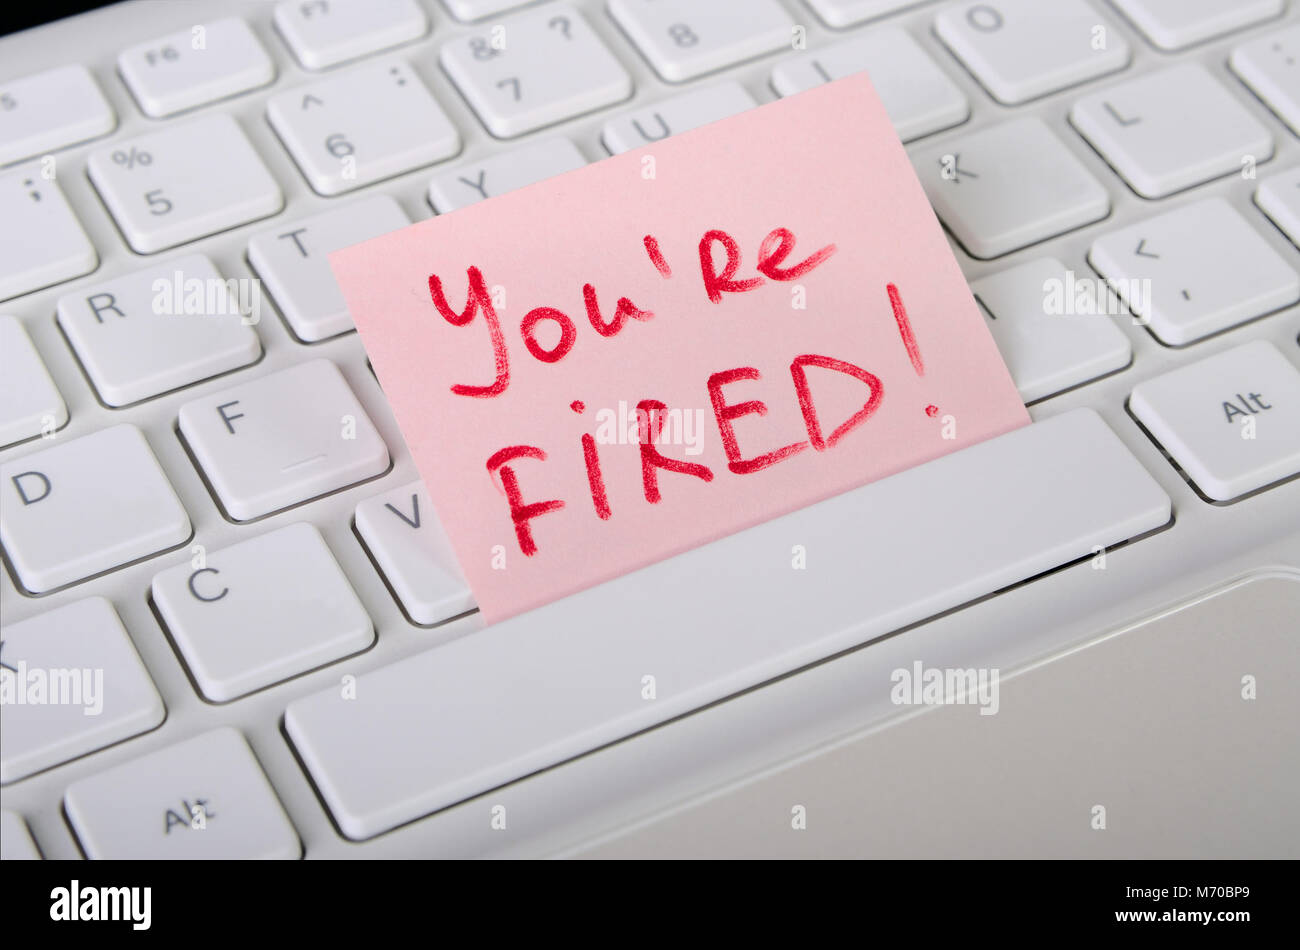 Job dismissal notice is on computer keyboard - Stock Image